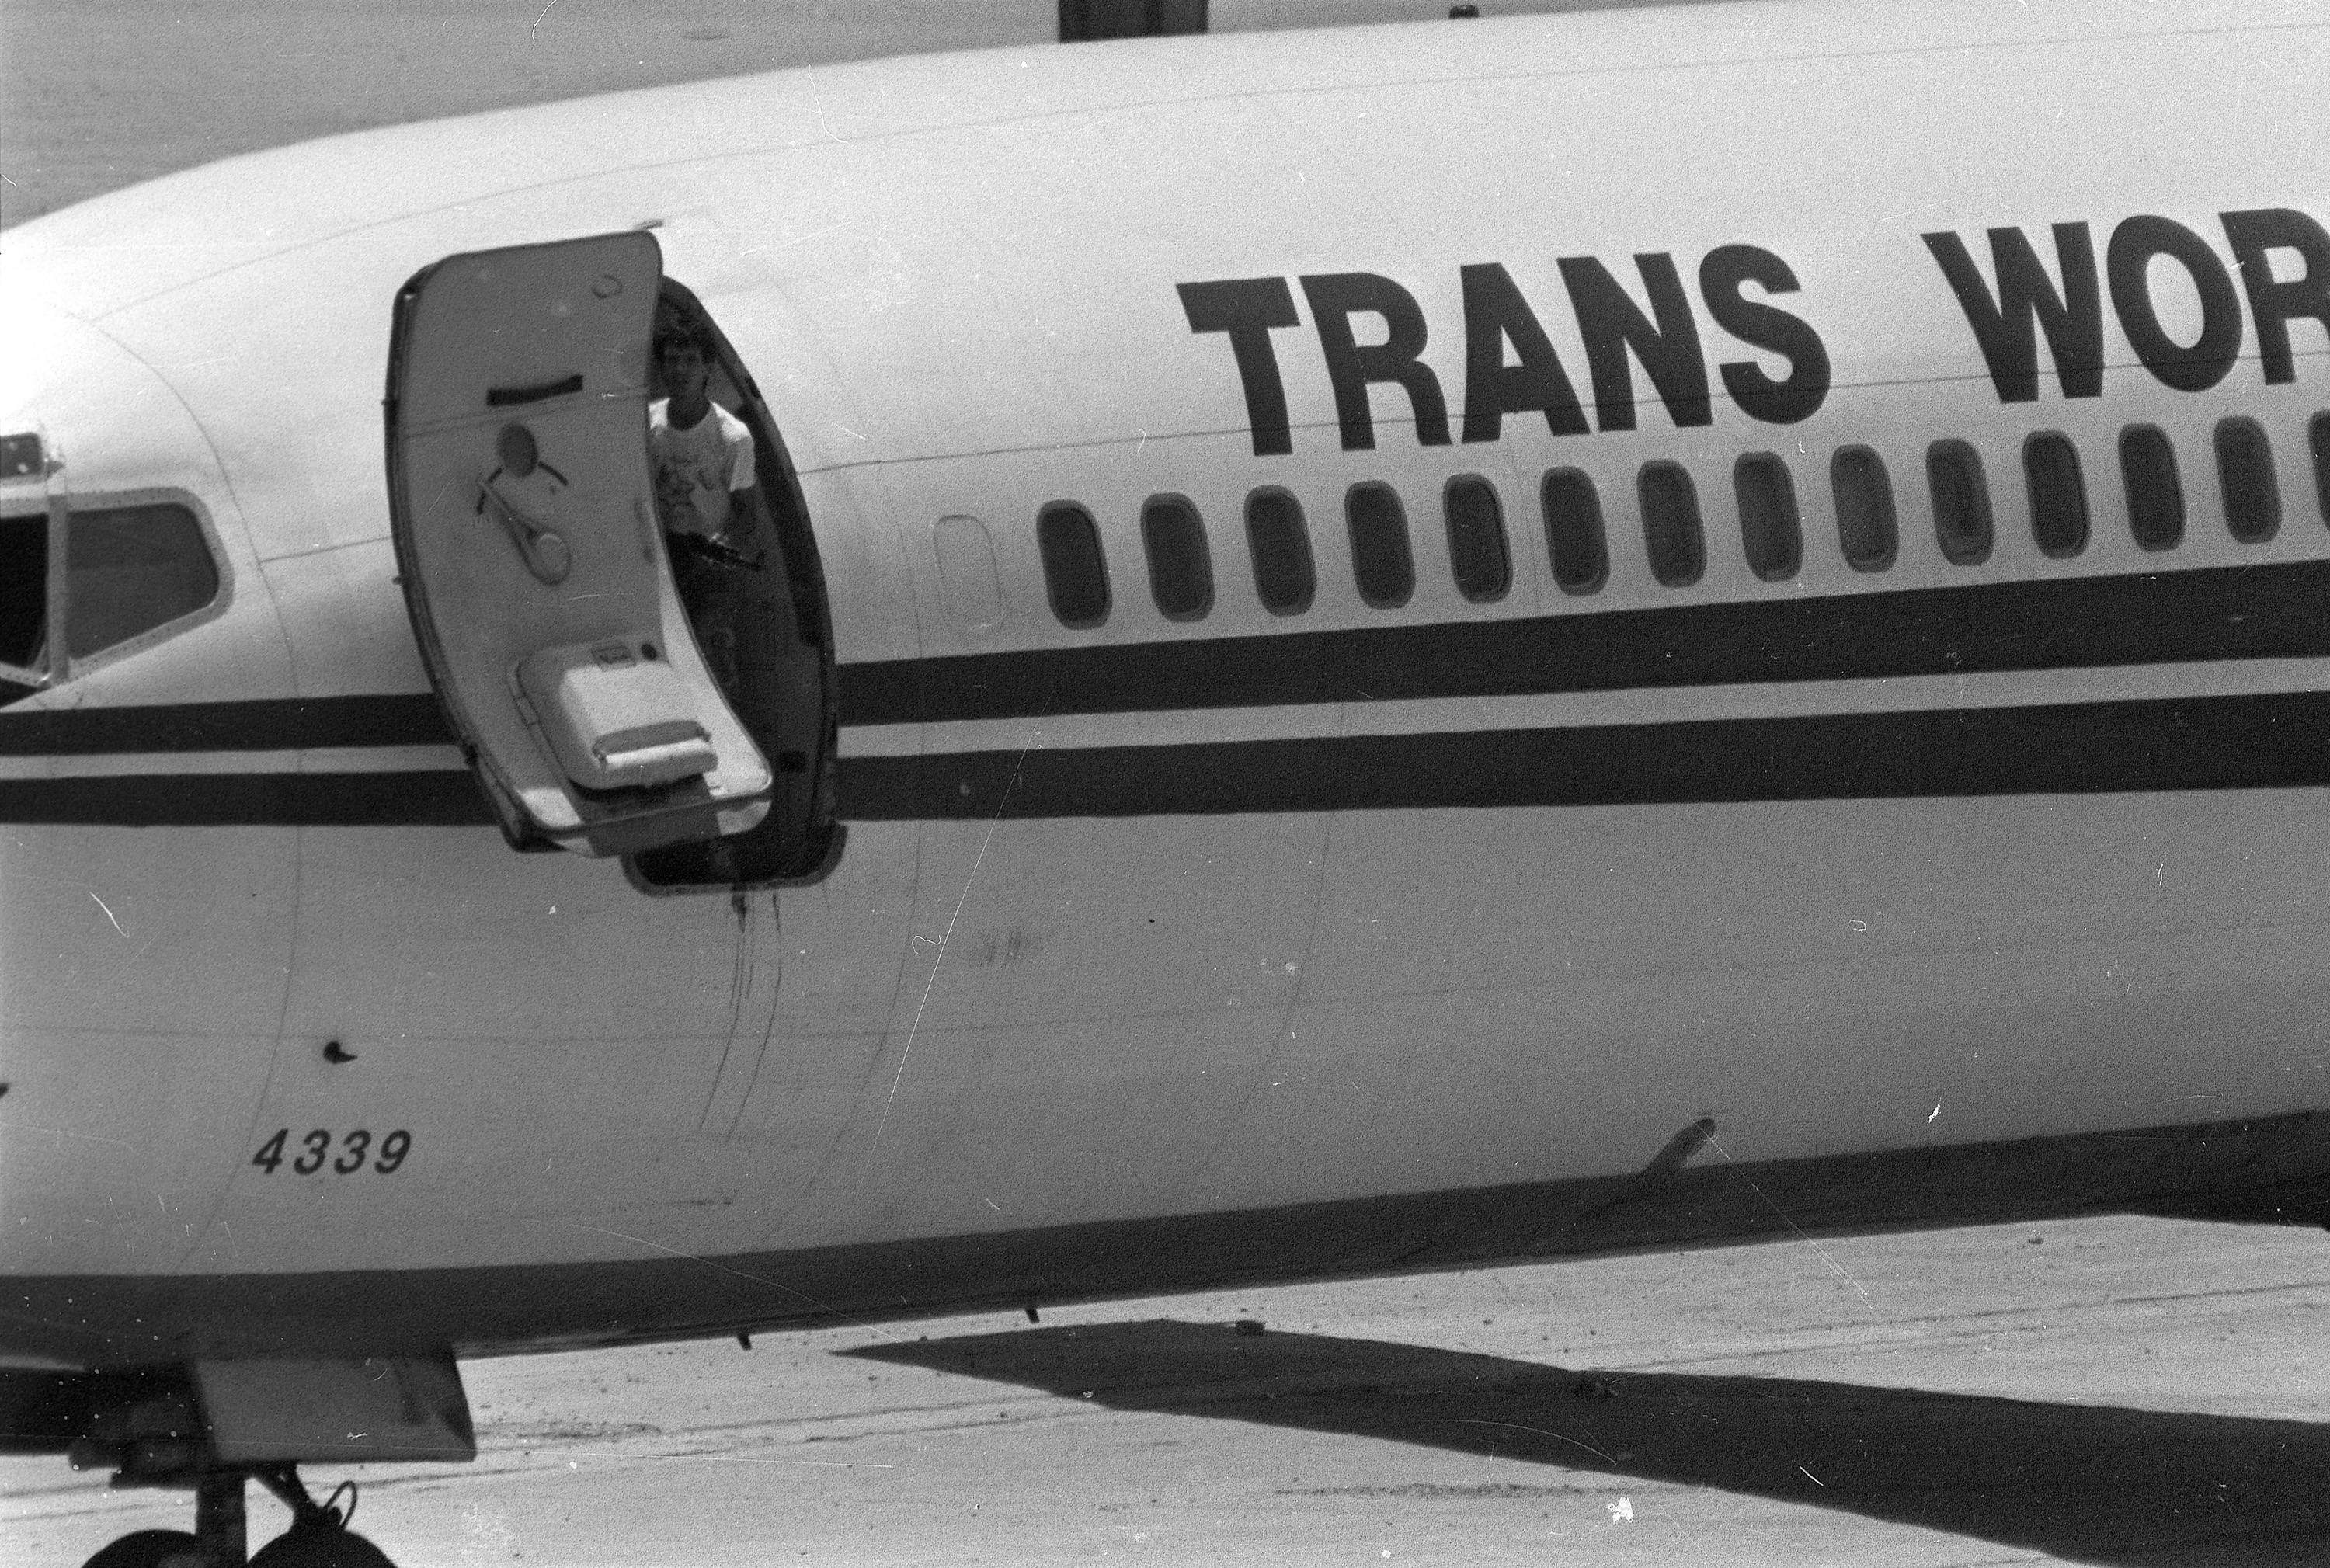 TWA Flight 847 from Athens to Rome was hijacked on June 14, 1985, by Shiite Hezbollah militants who forced the plane to land in Beirut, Lebanon.